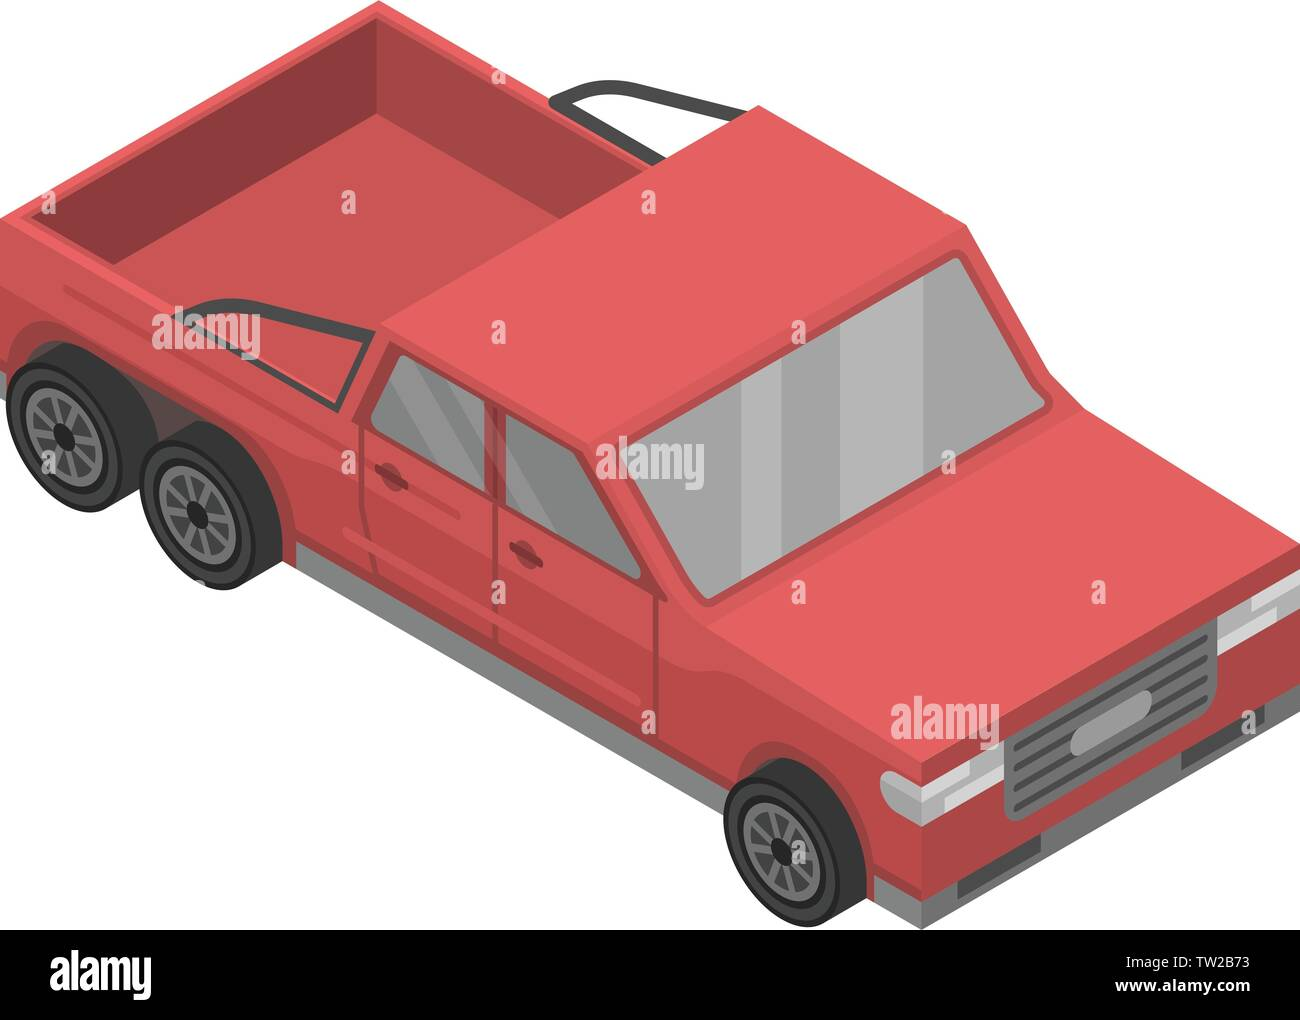 Modern red pickup icon, isometric style - Stock Image